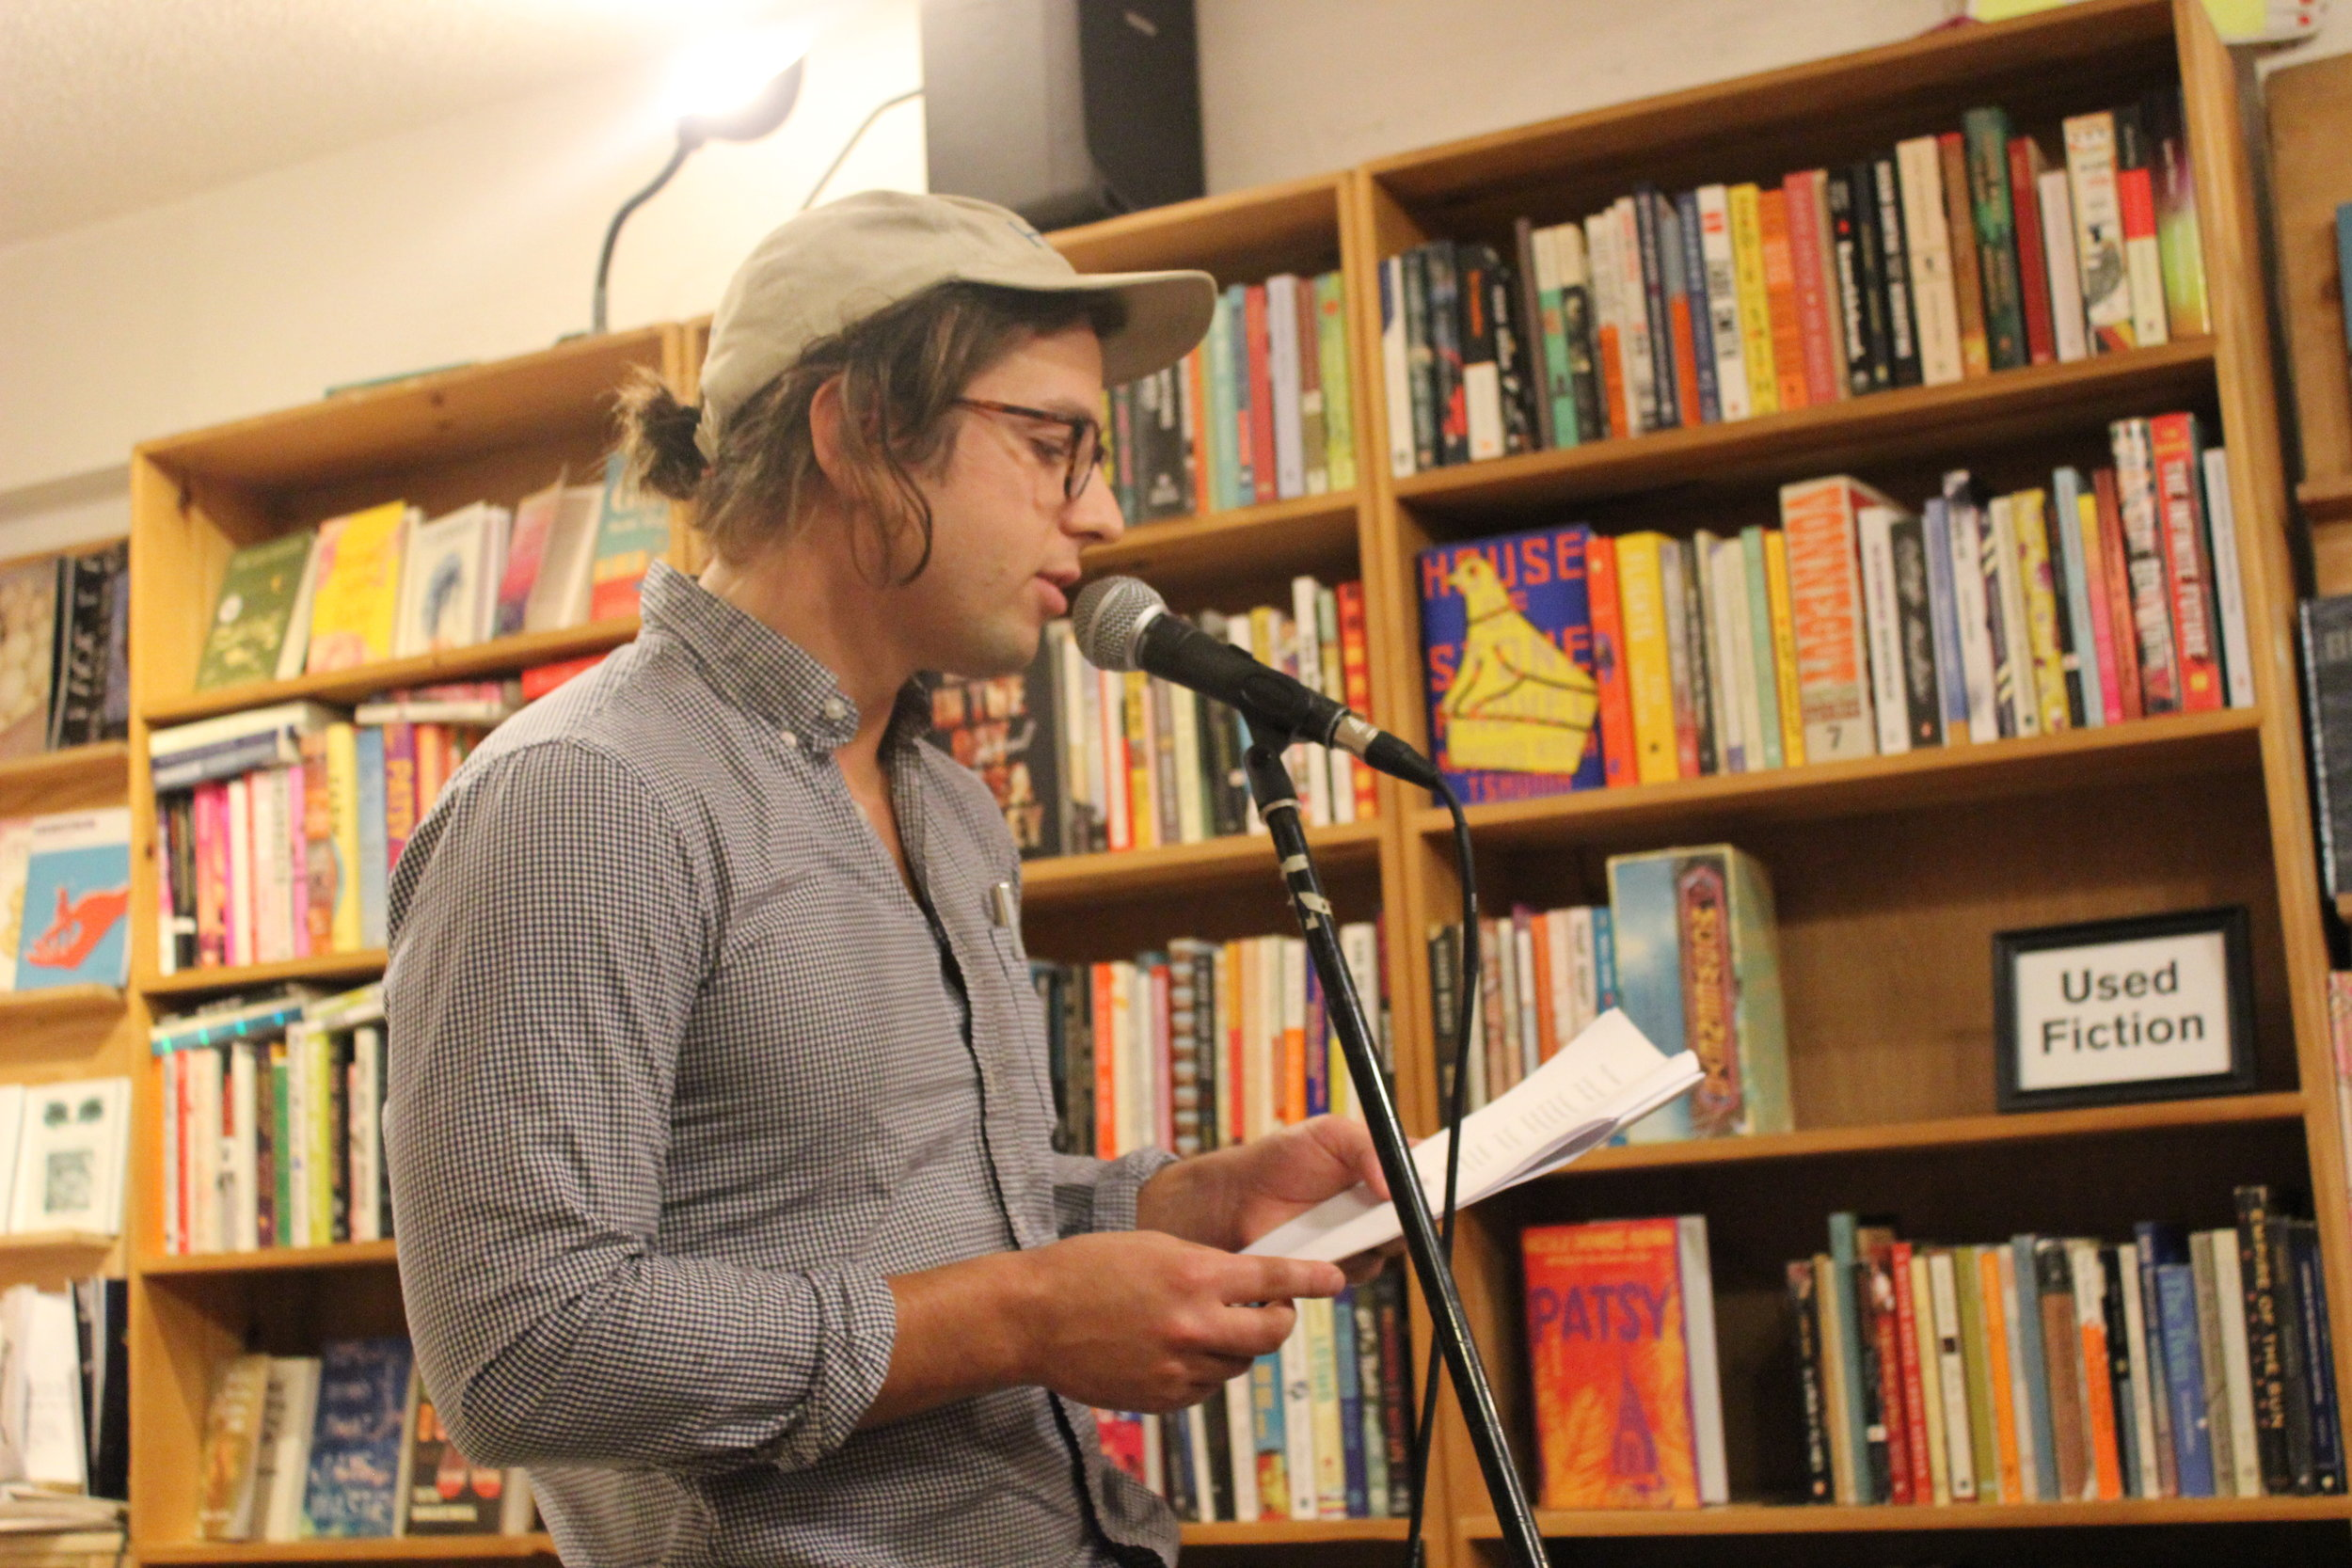 Caleb Beckwith reads poetry at Wolfman Books in downtown Oakland at a reading hosted by Jacob Kahn on 8/19/19